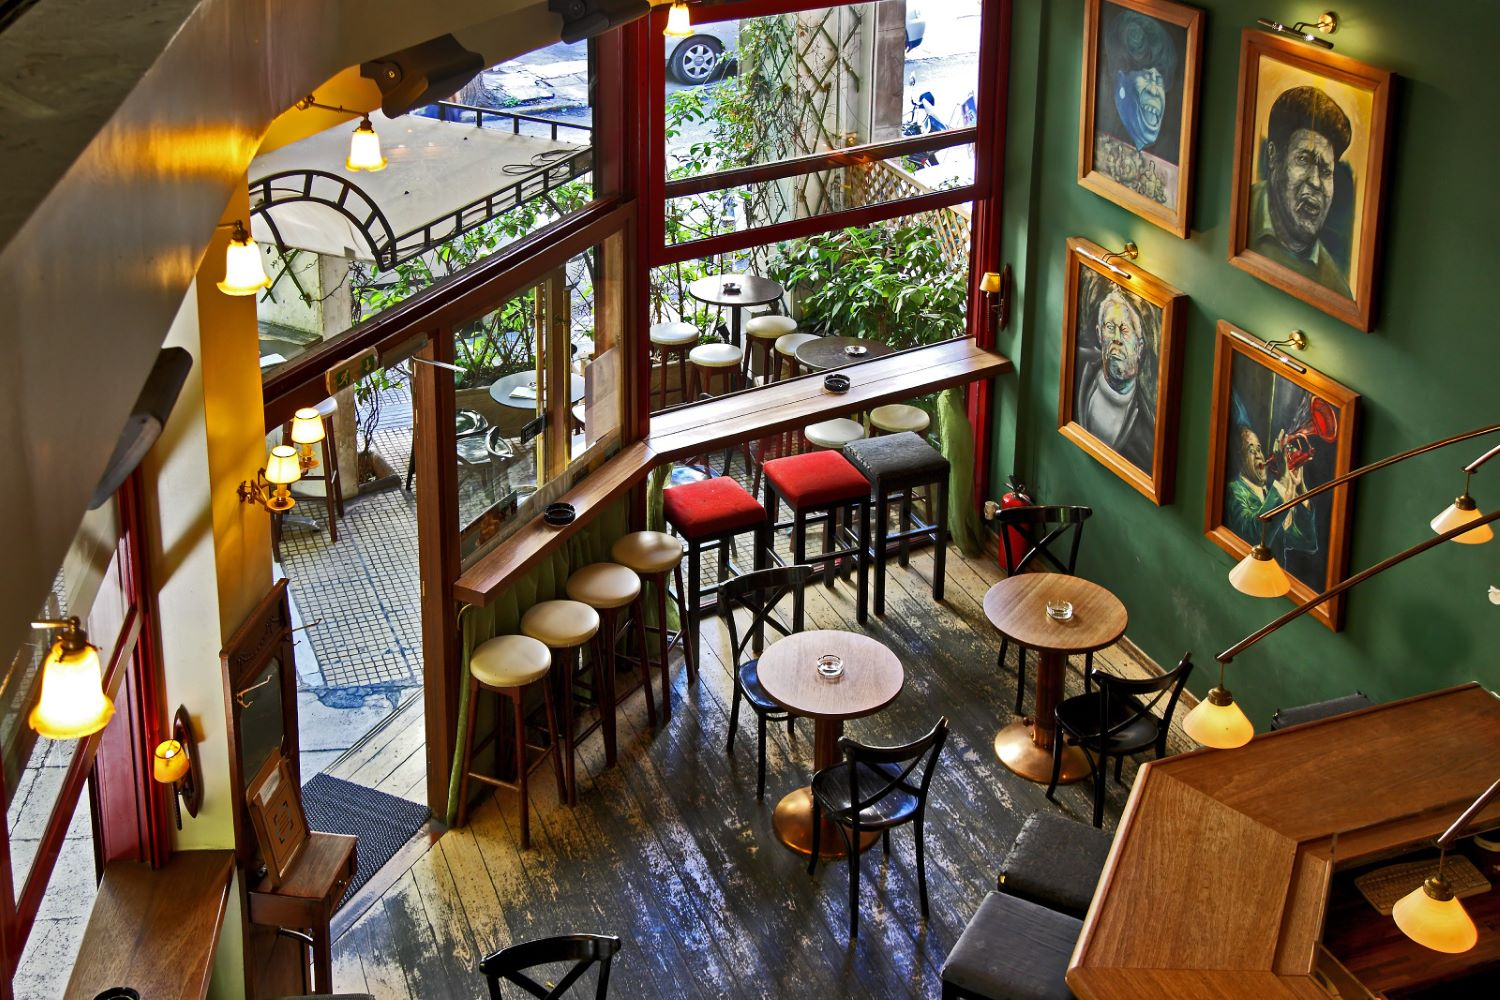 Have a drink in one of Exarcheia's most famous bars, Mavros Gatos. Photo source: neopolis.gr